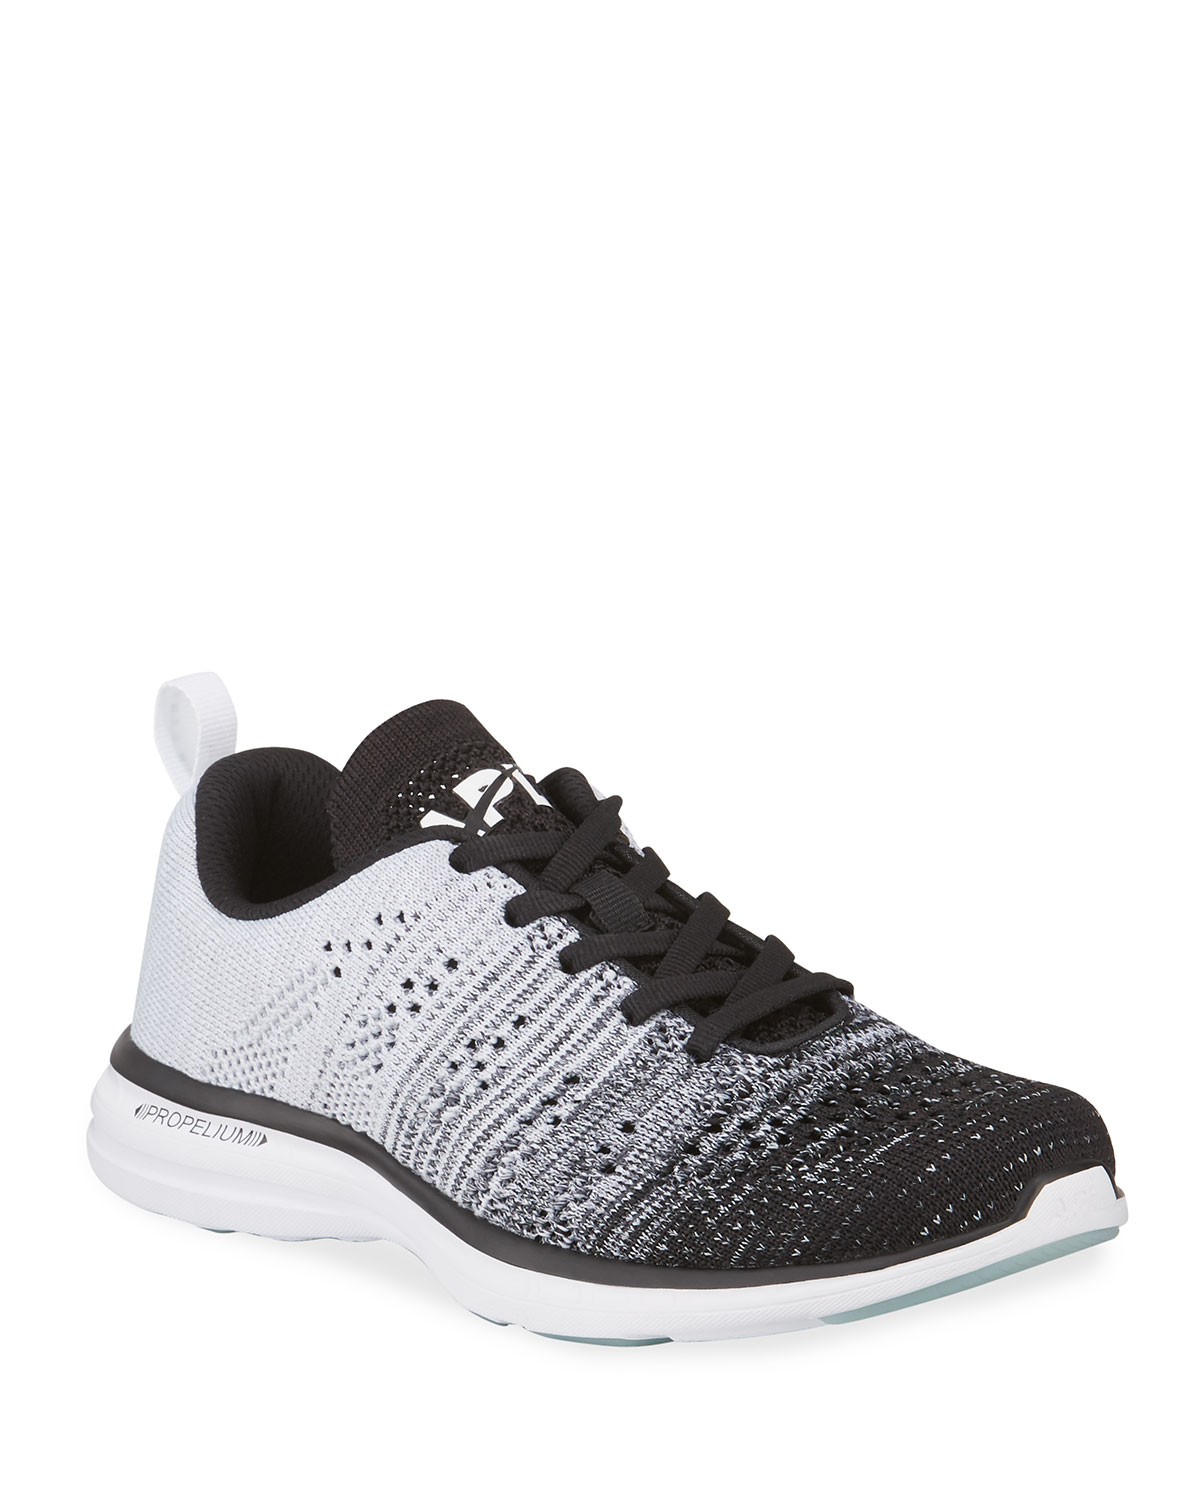 f2a7749711d9 APL  Athletic Propulsion Labs Techloom Pro Knit Mesh Sneakers ...